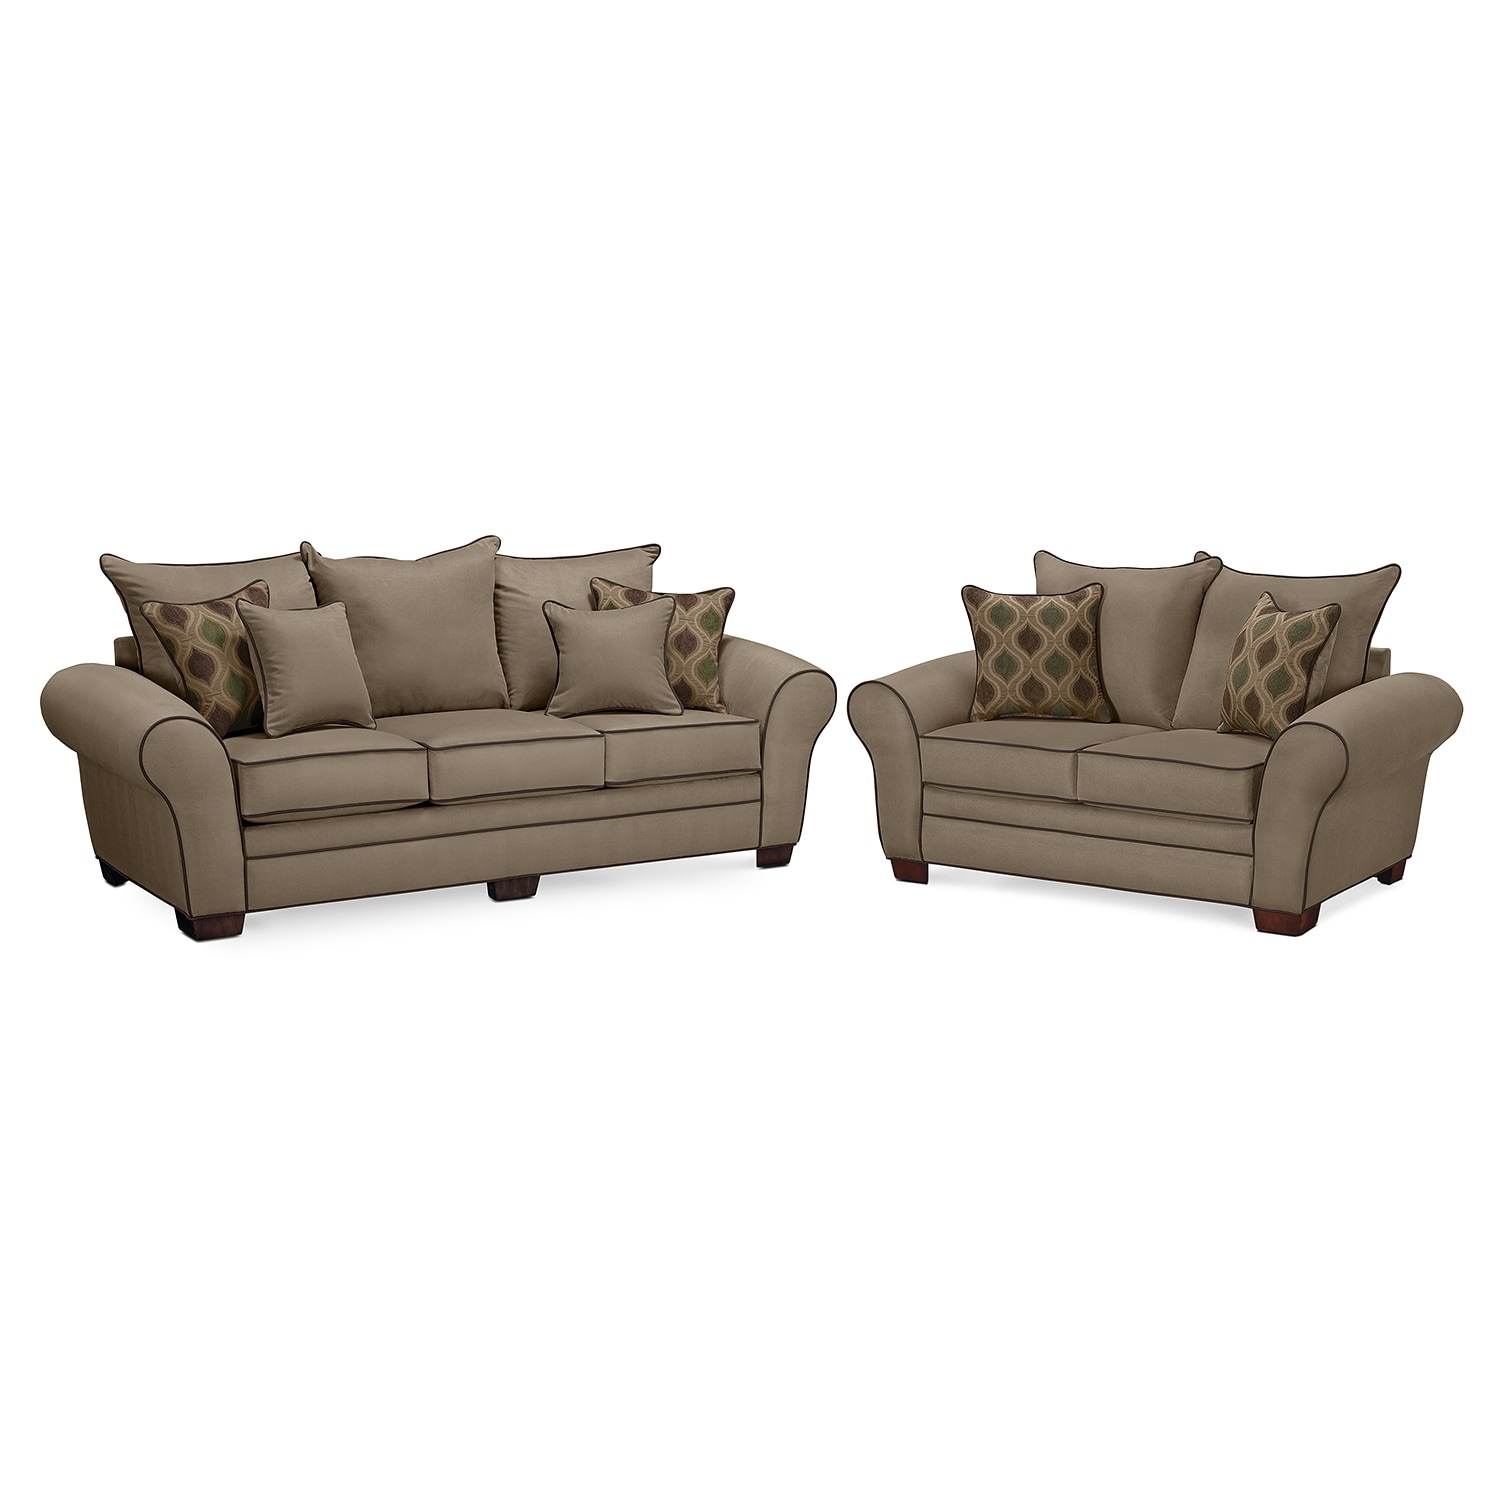 Rendezvous Sofa and Loveseat Set - Tan